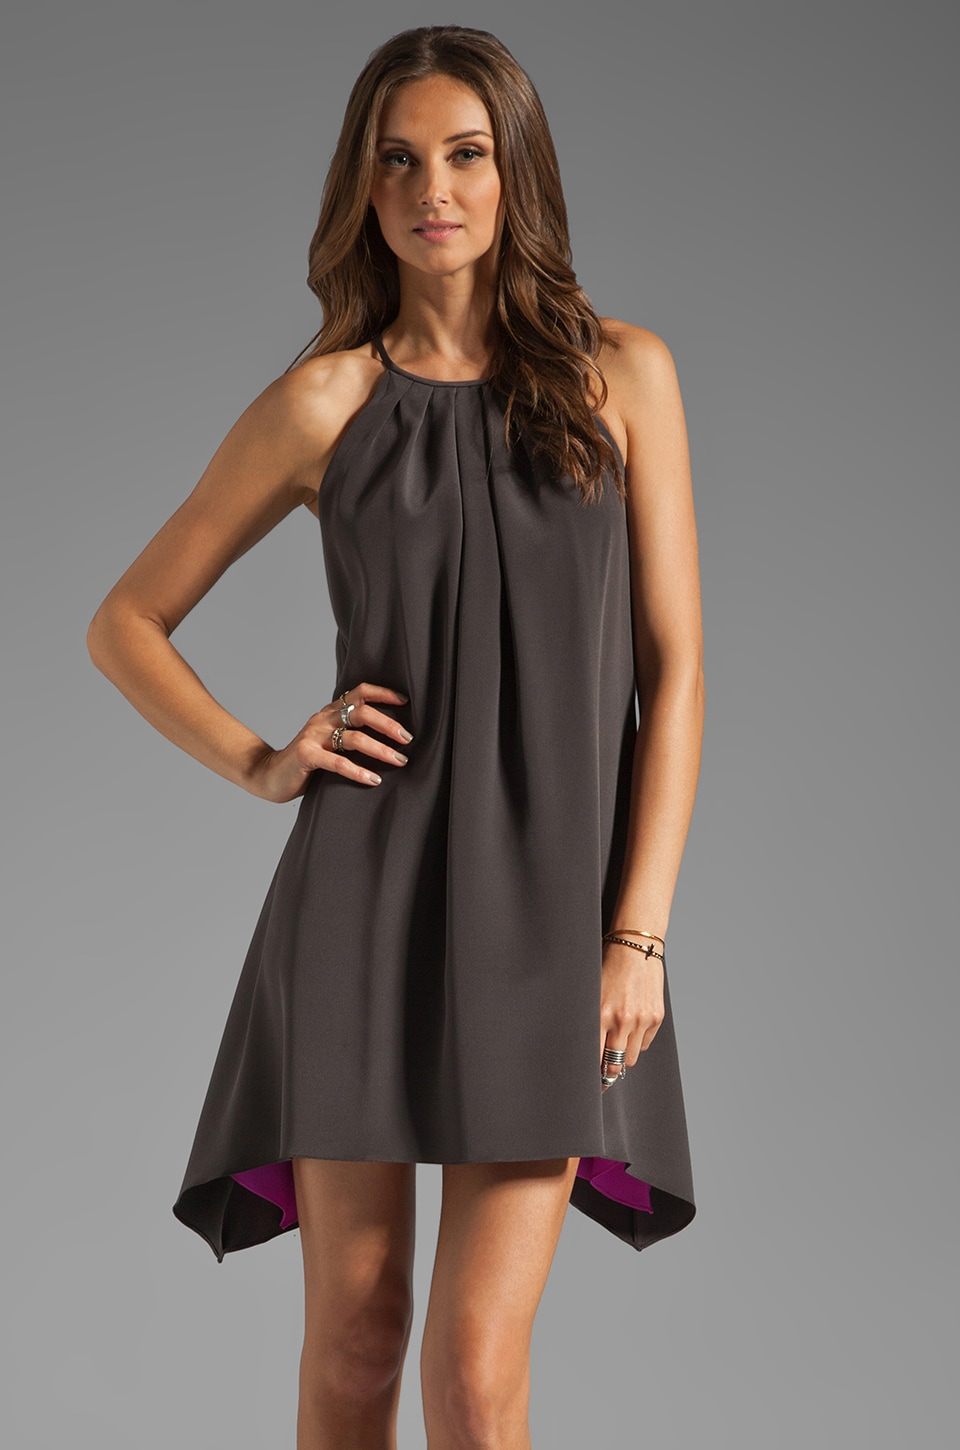 Jay Godfrey Wells Pleated Neckline Dress in Charcoal/Shocking Pink